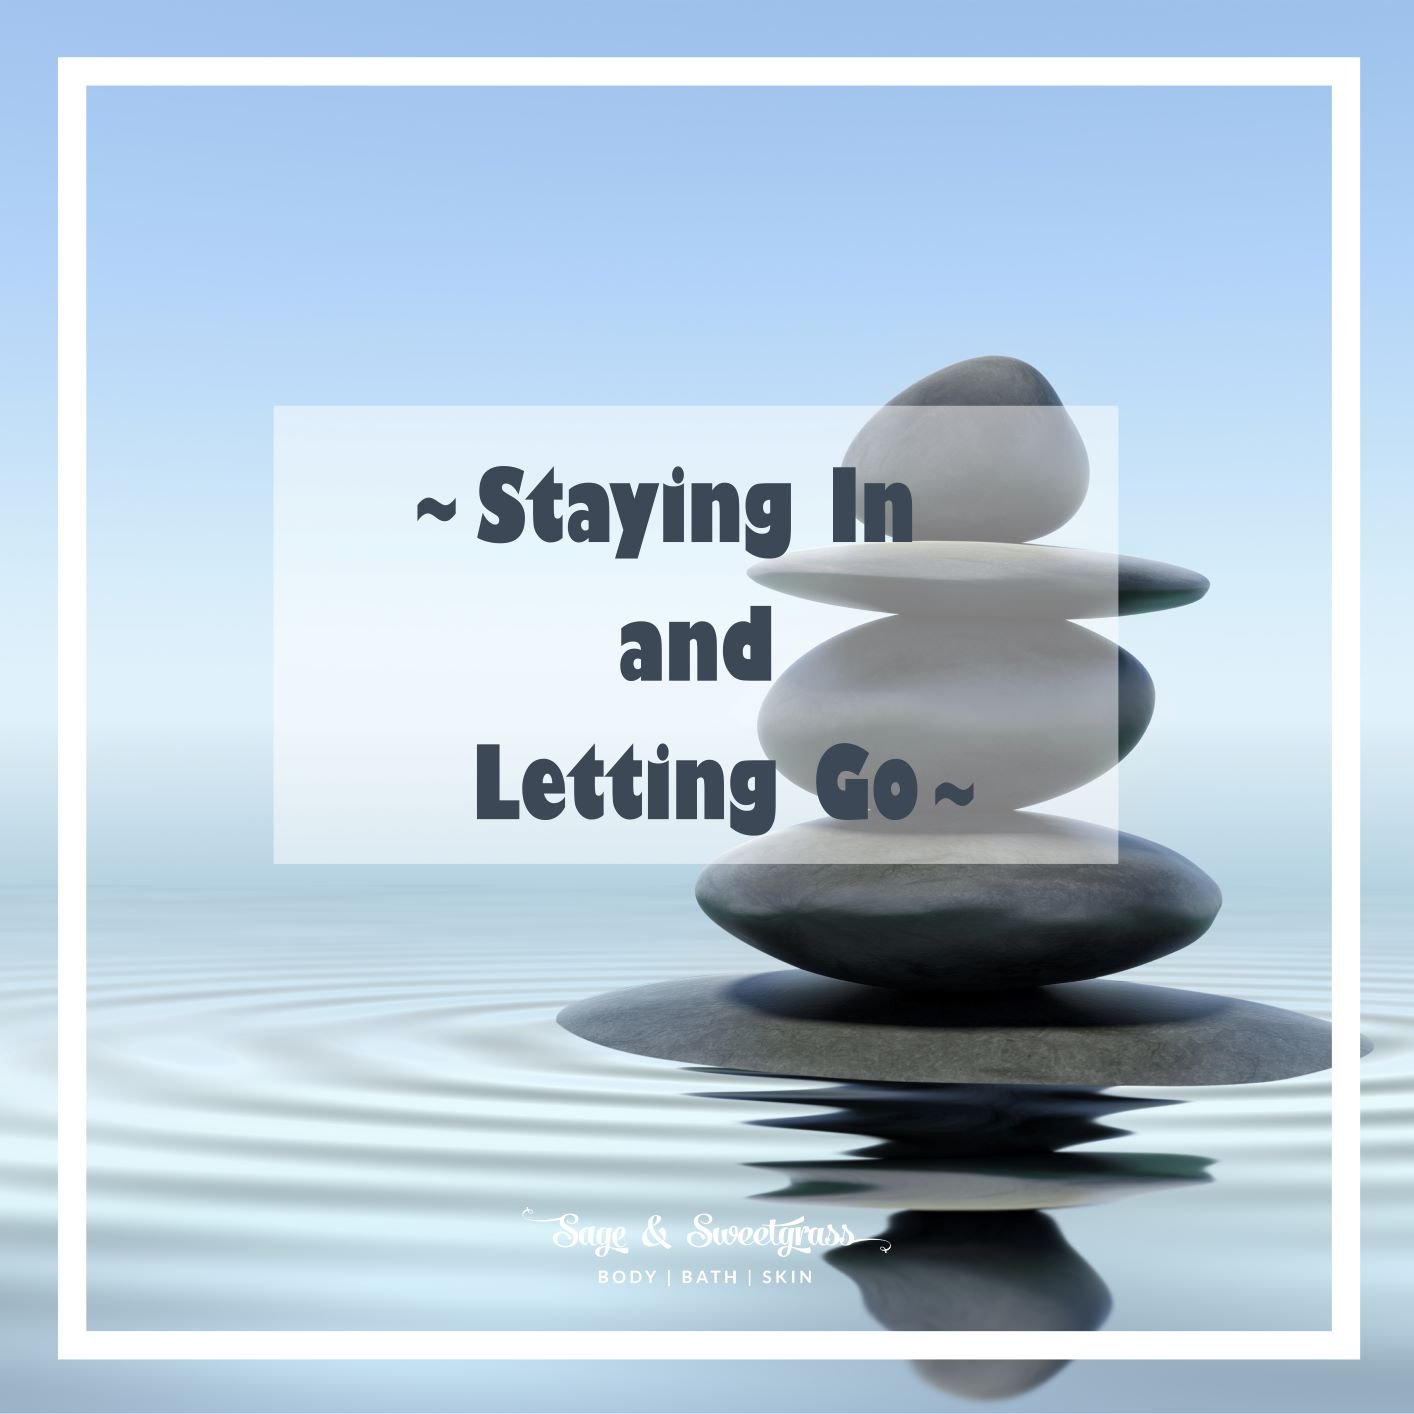 Staying in and Letting Go